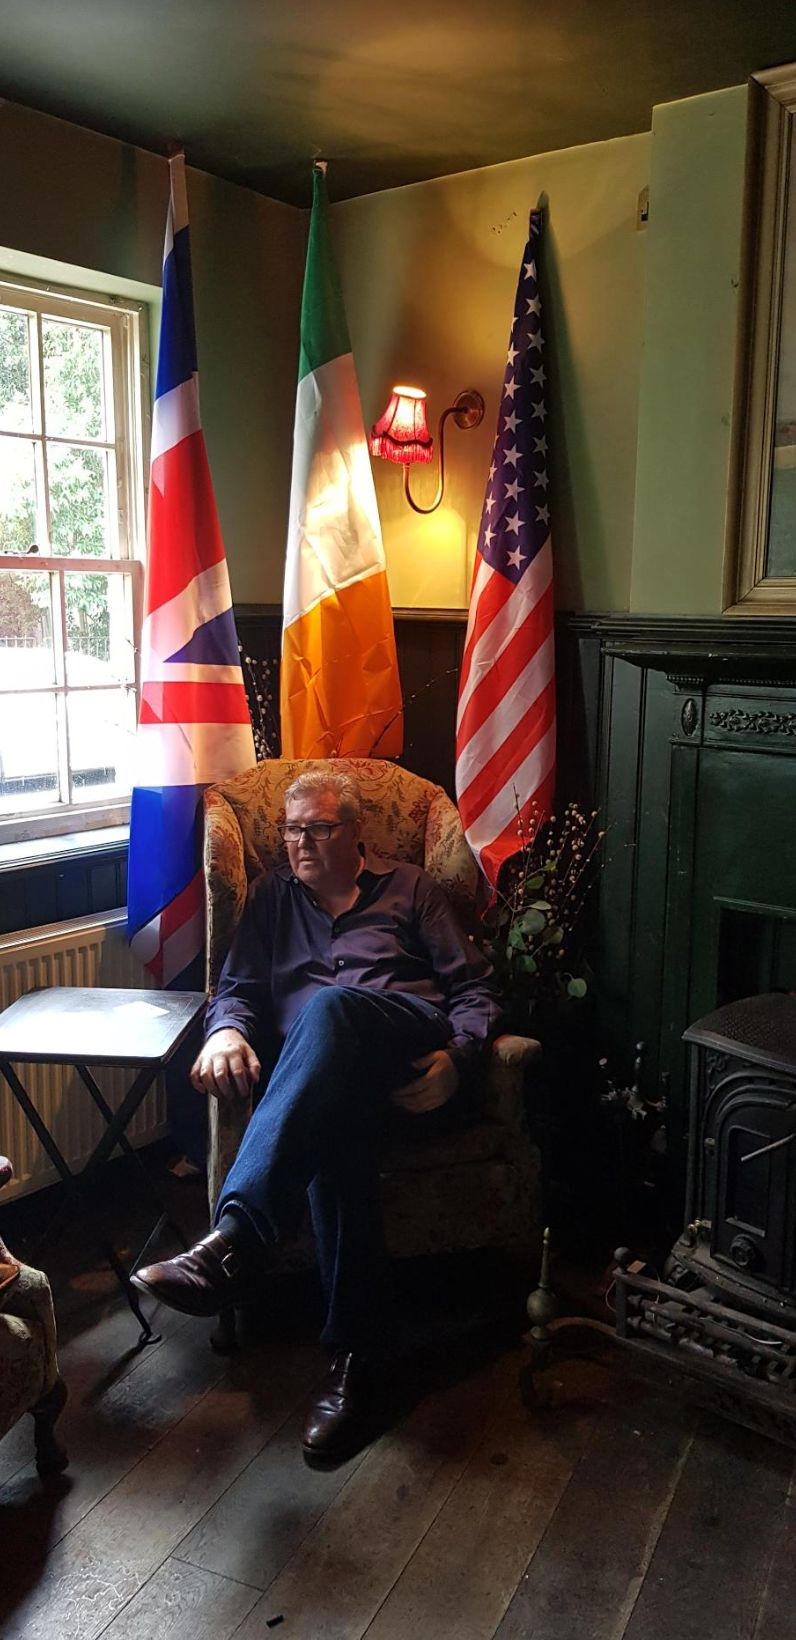 Pub landlord Damien Smyth respects Donald Trump for 'trying to better the world'